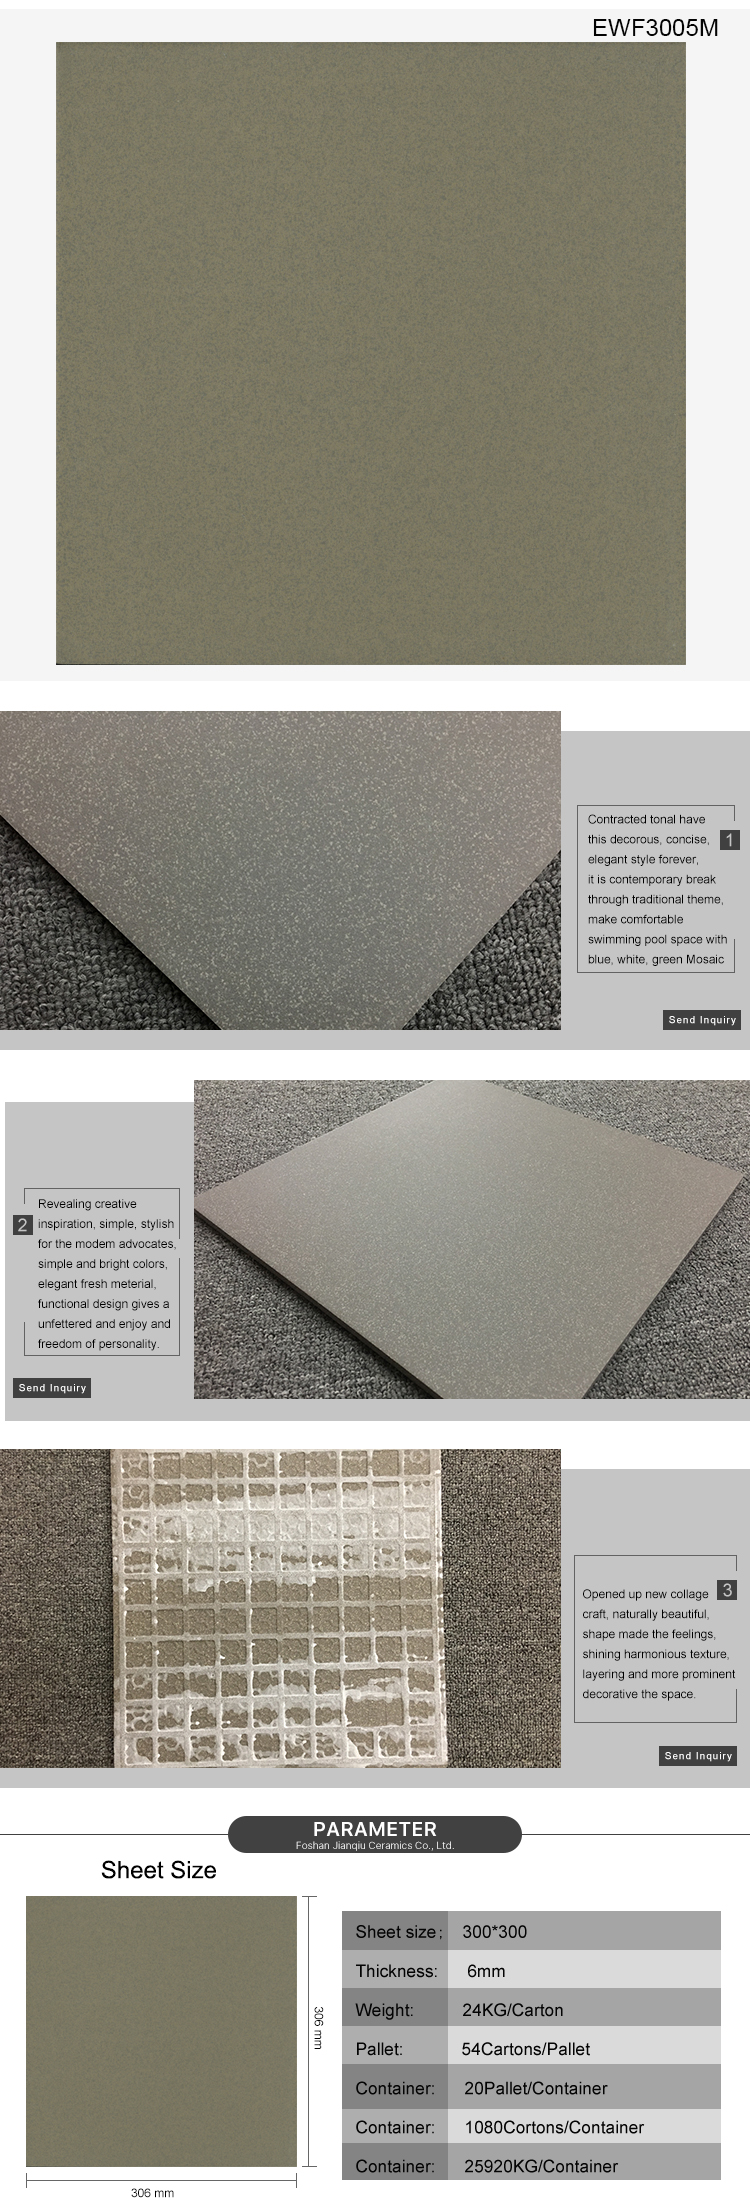 China supplier new product building material bathroom granite stairs design cement tile tactile tiles